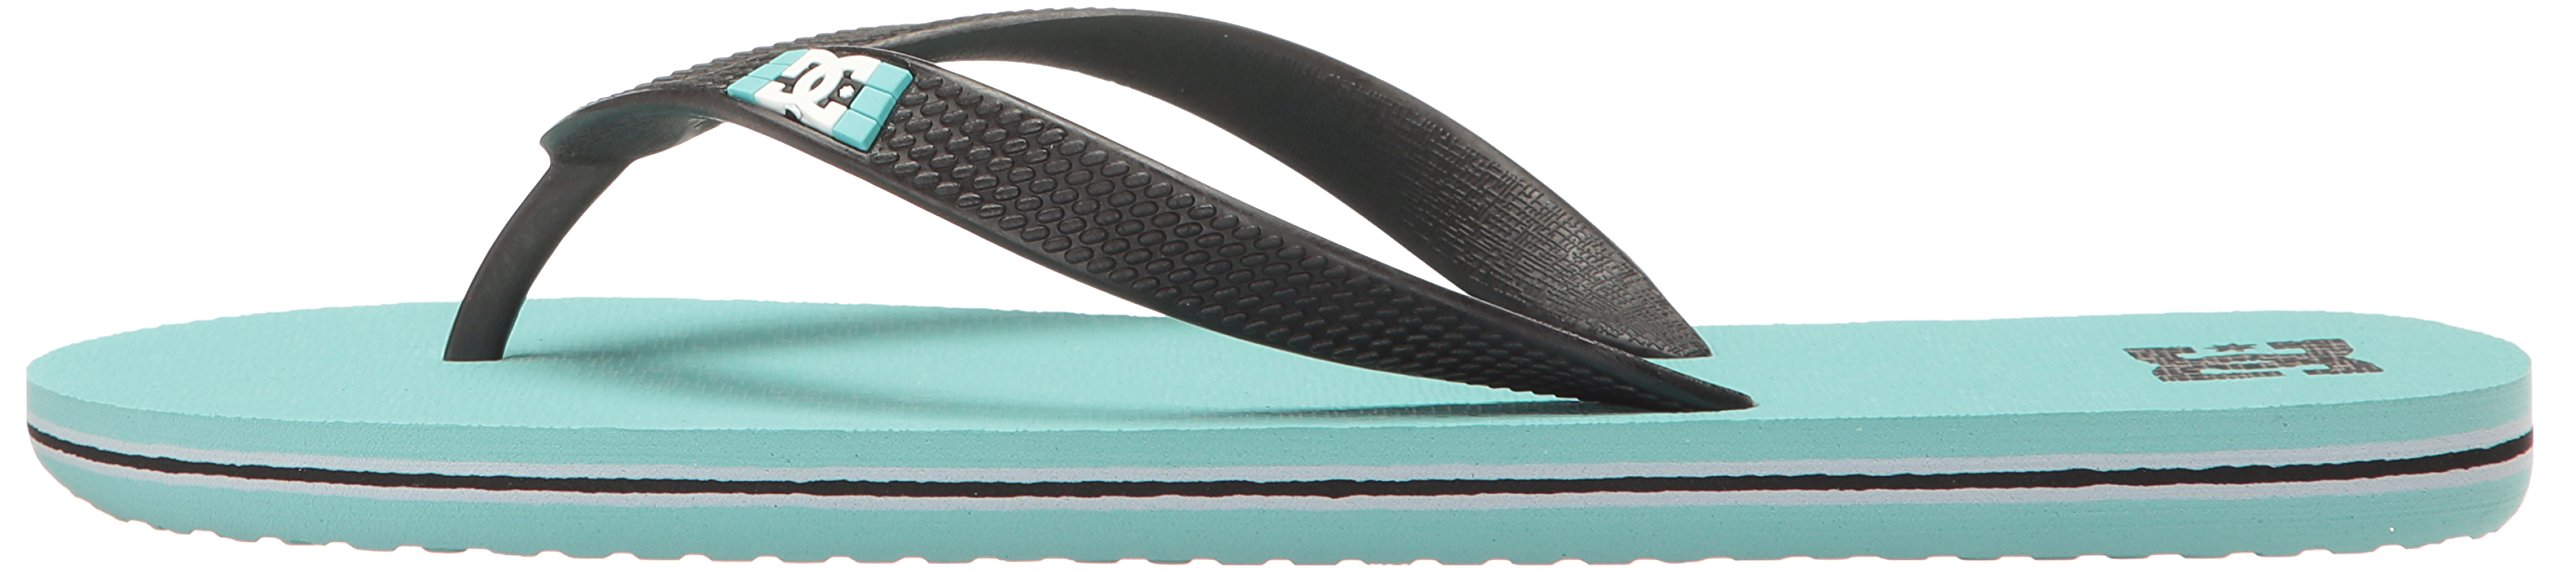 DC Girls' Spray Flip Flop, Turquoise, 6 M US Little Kid by DC (Image #5)